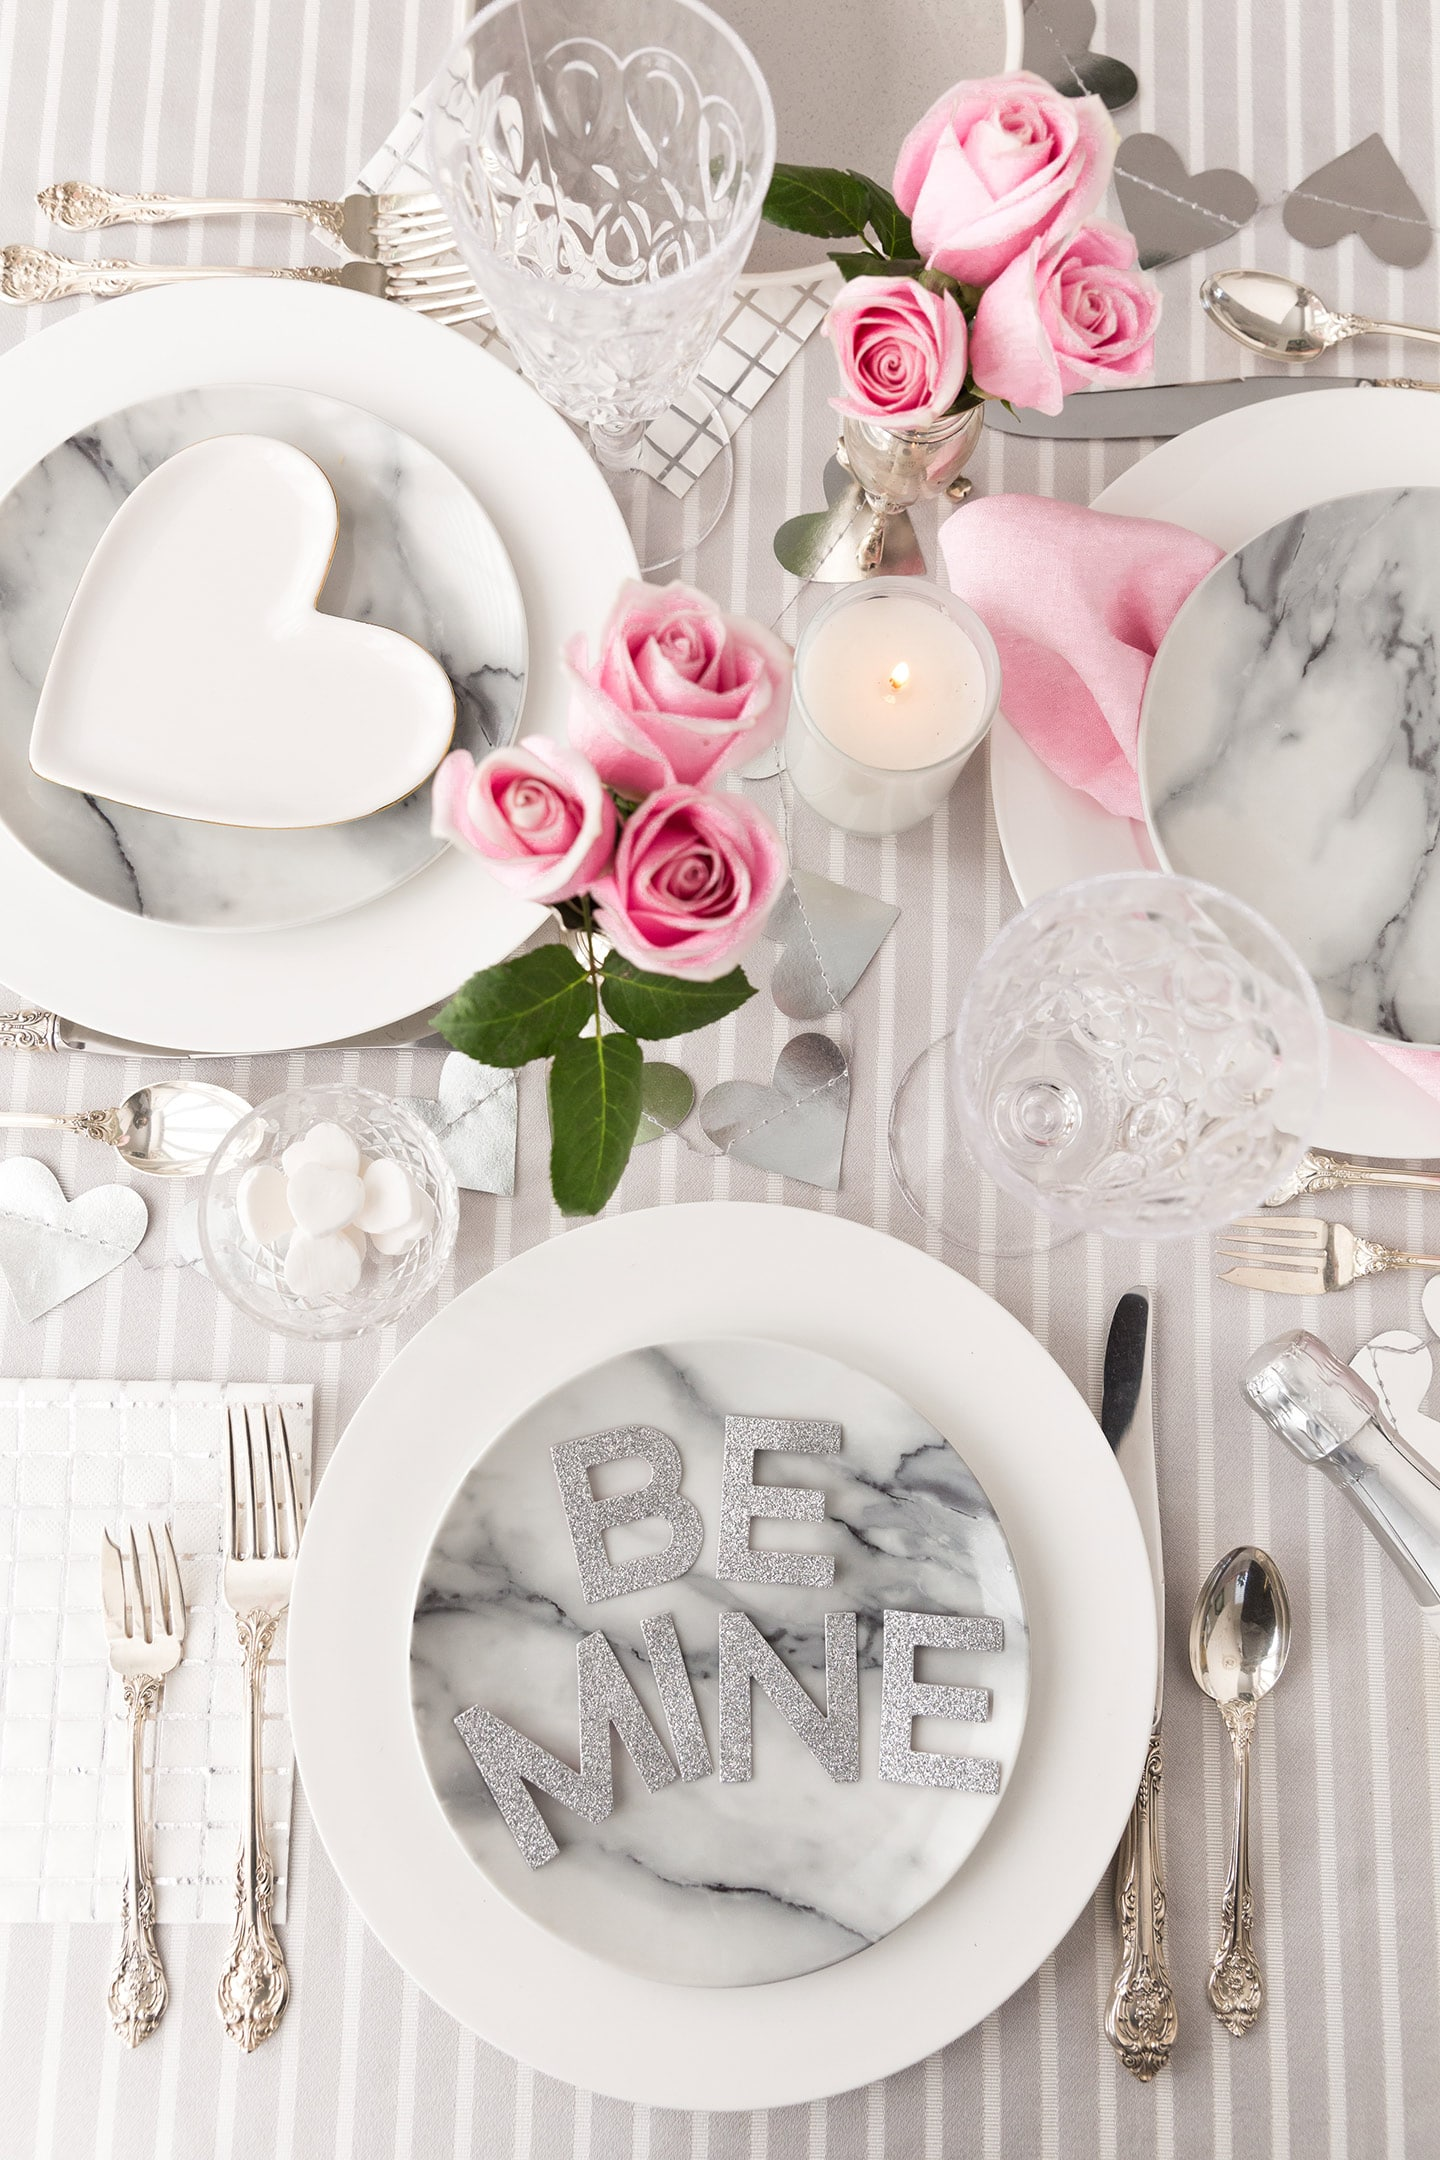 white striped tablecloth with white chargers and marble plates and a BE MINE sign on top of plate and pink roses in the center